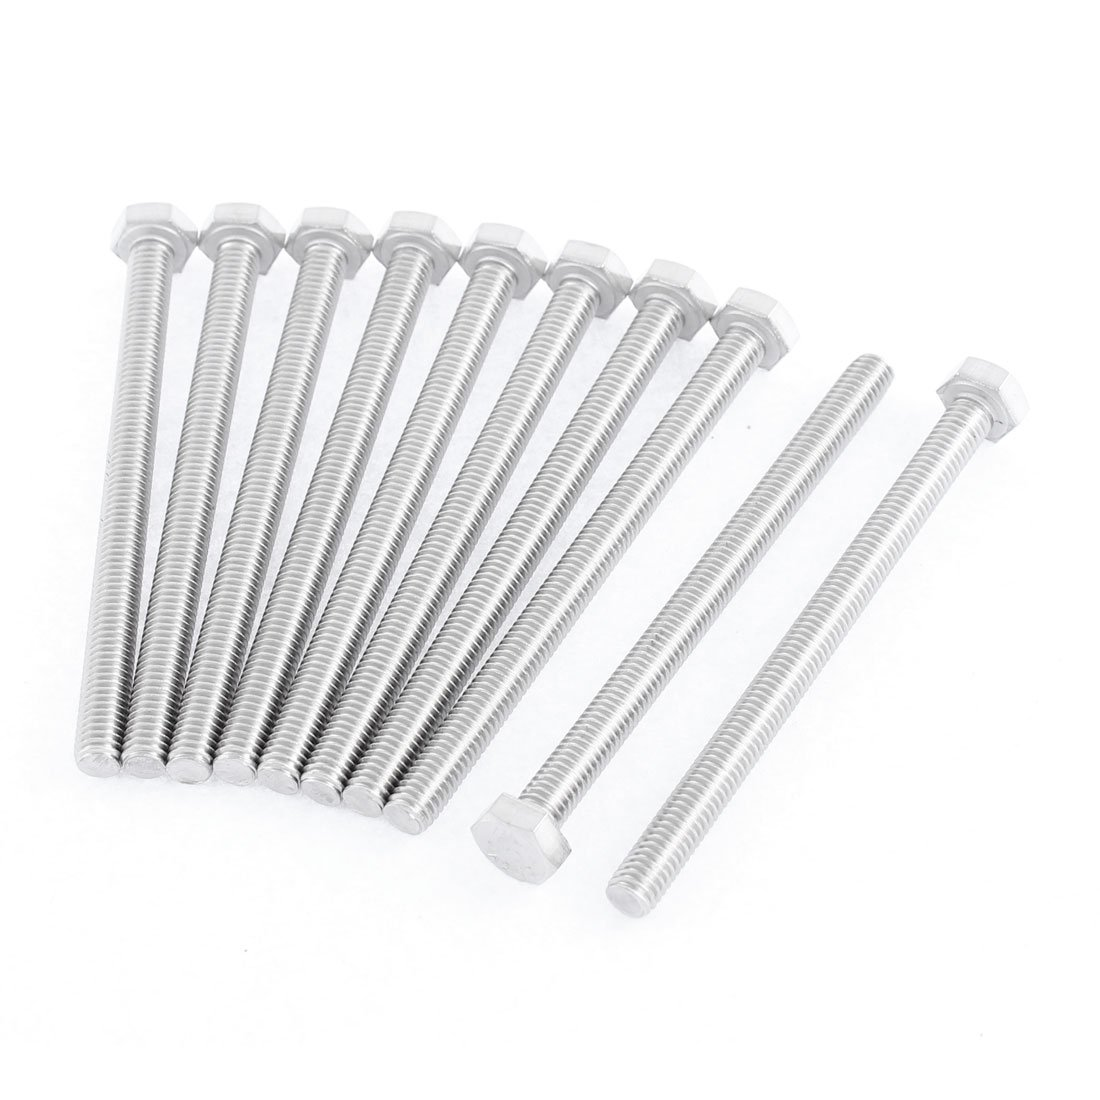 uxcell M6 x 80mm Fully Threaded Stainless Steel Hex Head Screw Bolt 10 Pcs US-SA-AJD-170788